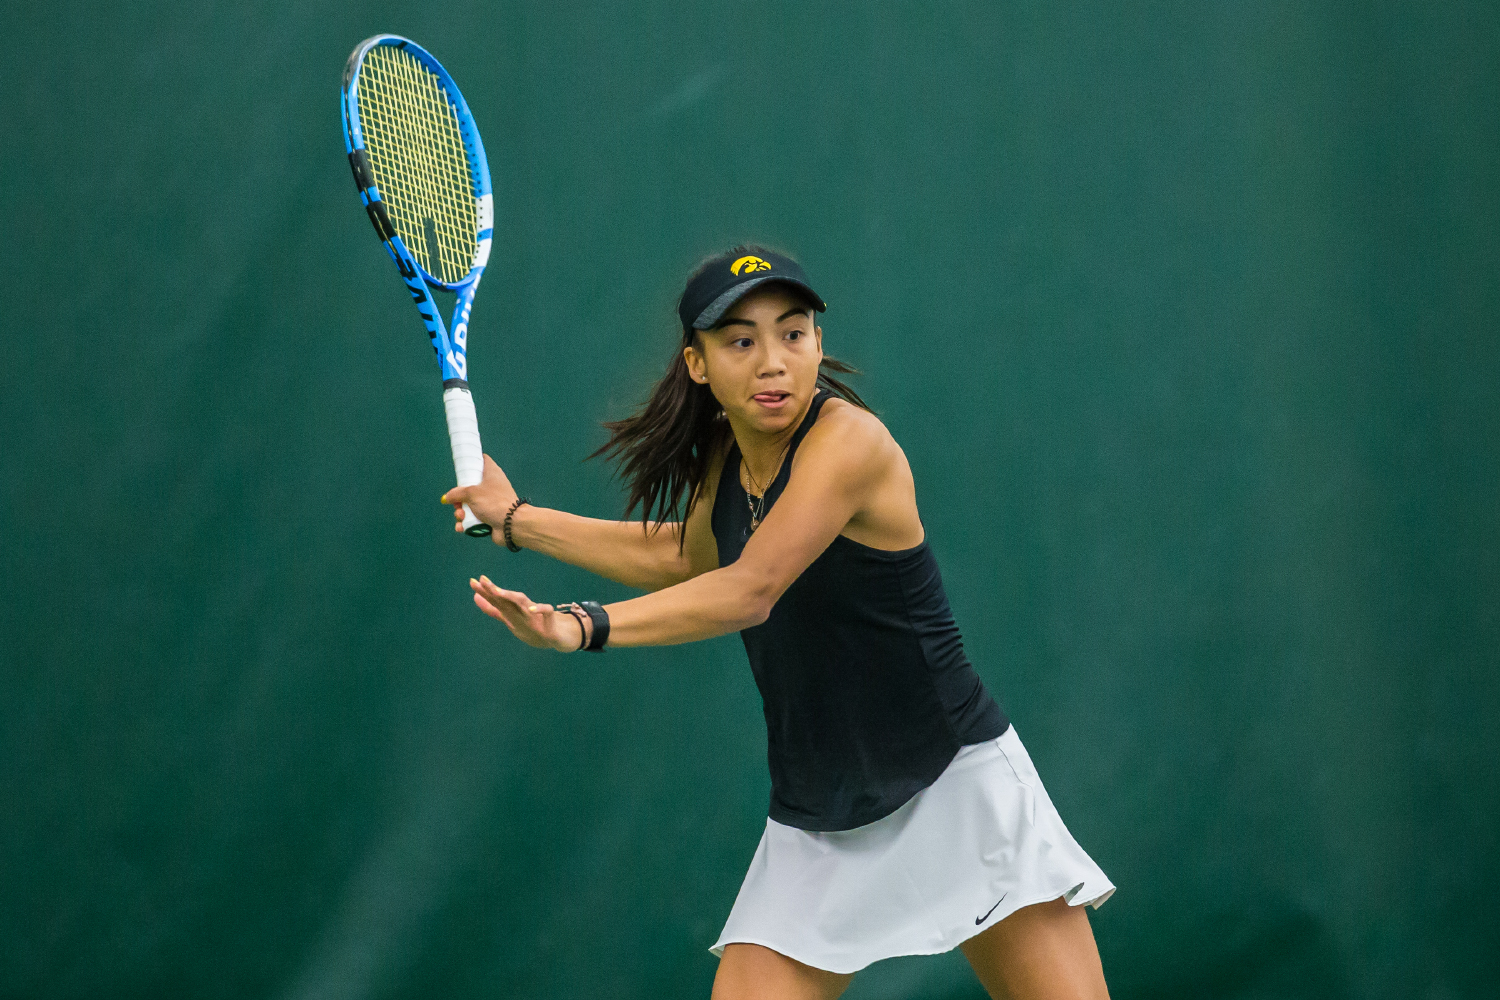 Iowa's Michelle Bacalla hits a forehand during a women's tennis match between Iowa and Nebraska at the HTRC on Saturday, April 13, 2019. The Hawkeyes, celebrating senior day, fell to the Cornhuskers, 4-2.